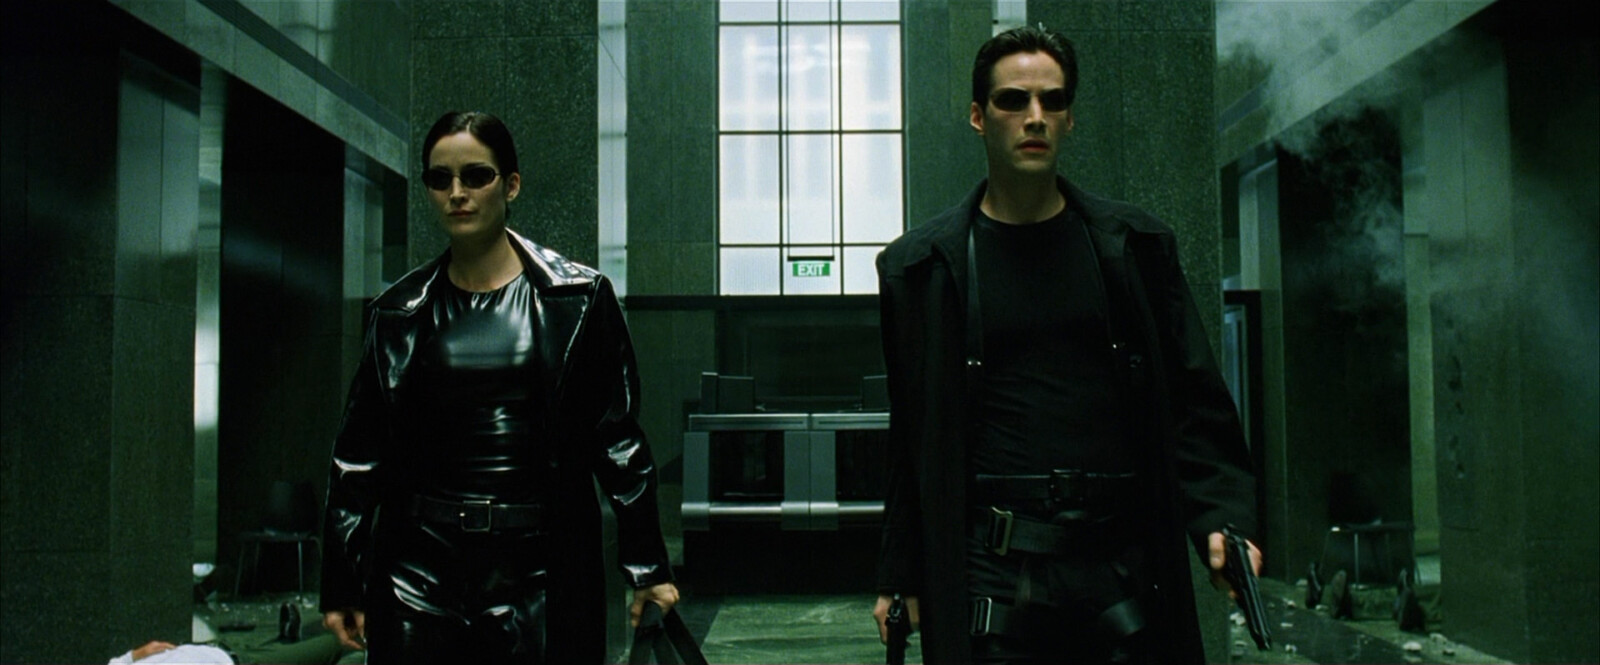 HjBK1ovBSBqL6HUAH0Pd_The-Matrix-HD-Wallpapers11